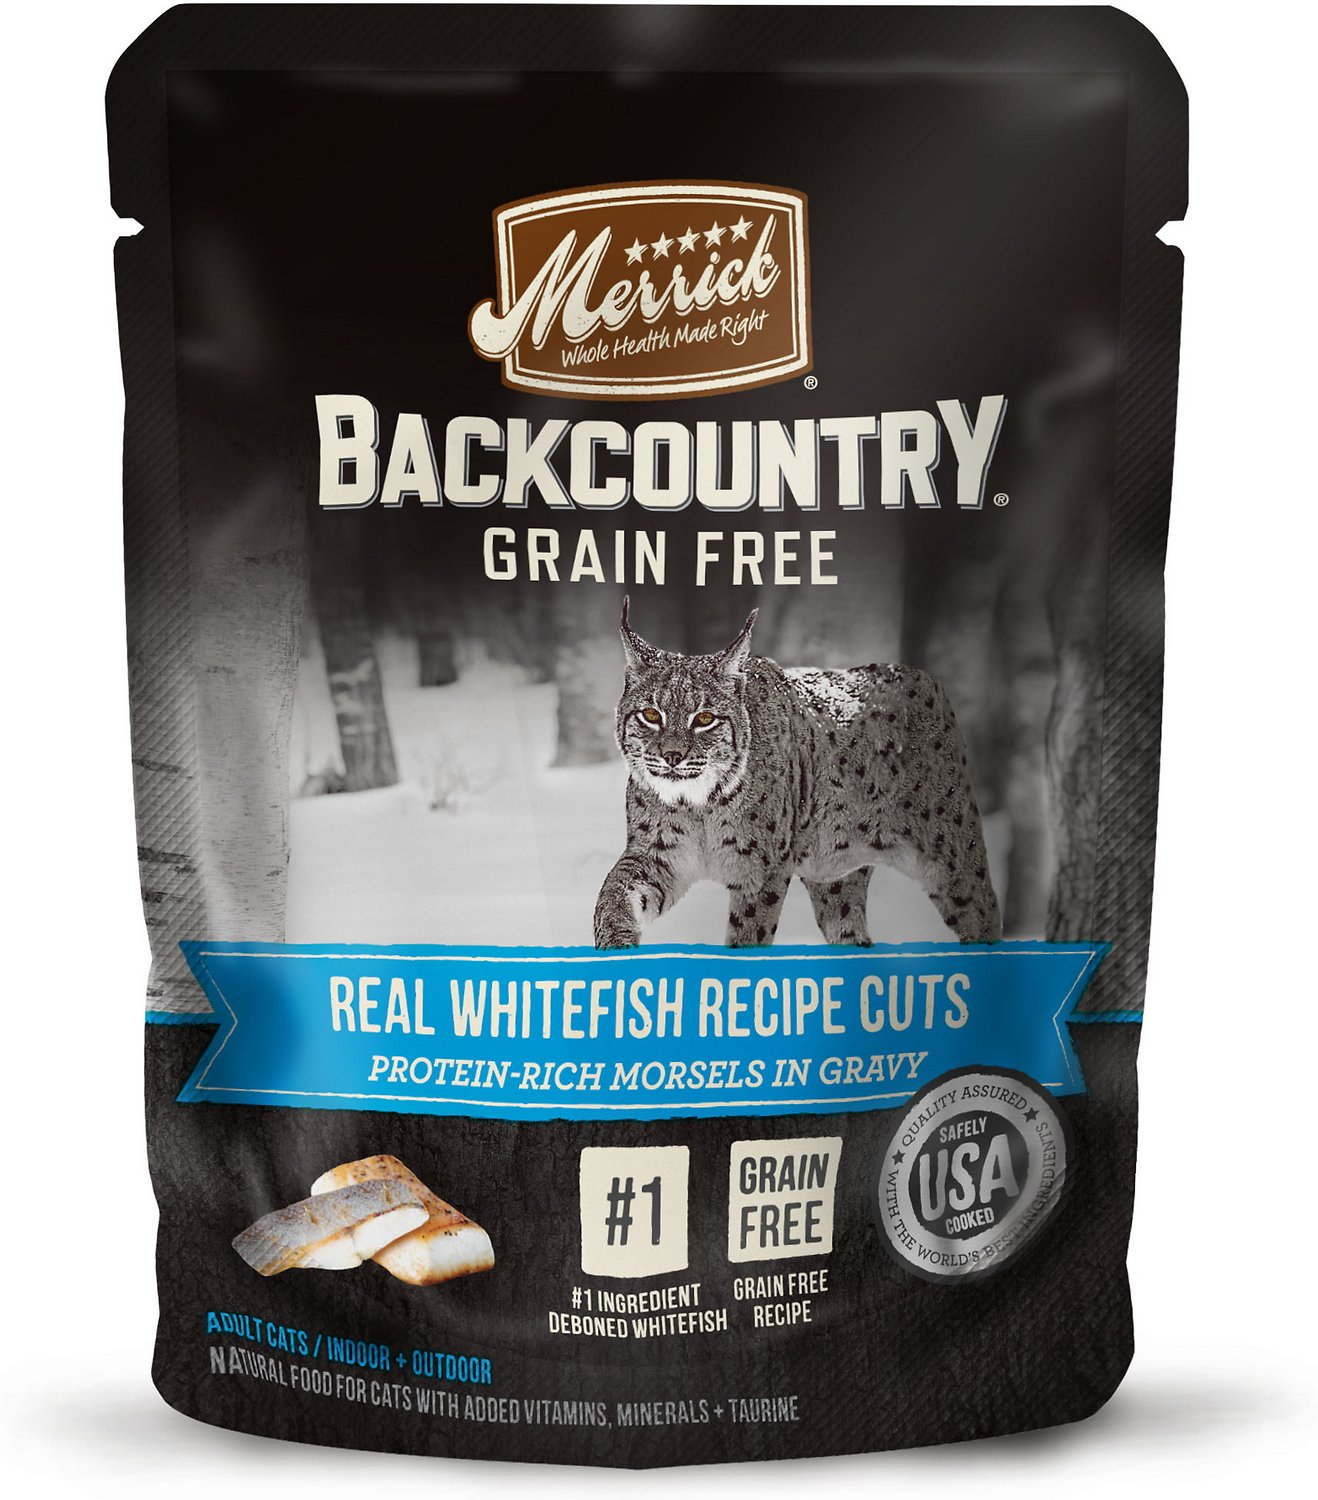 Merrick Backcountry Grain-Free Morsels in Gravy Real Whitefish Recipe Cuts Cat Food Pouches, 3-oz